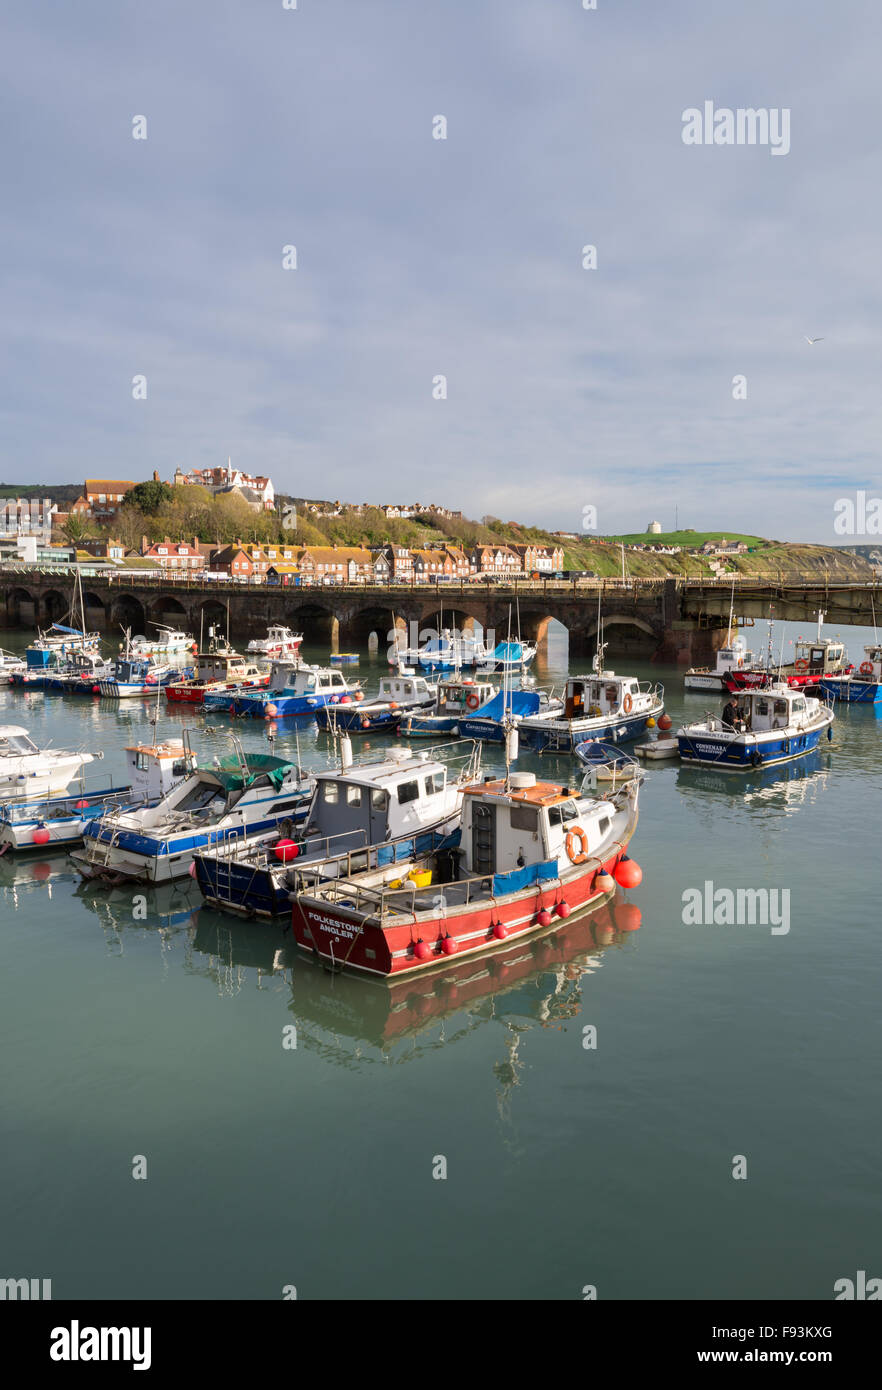 The fishing boats at Folkestone Harbour on the Kent coast. - Stock Image